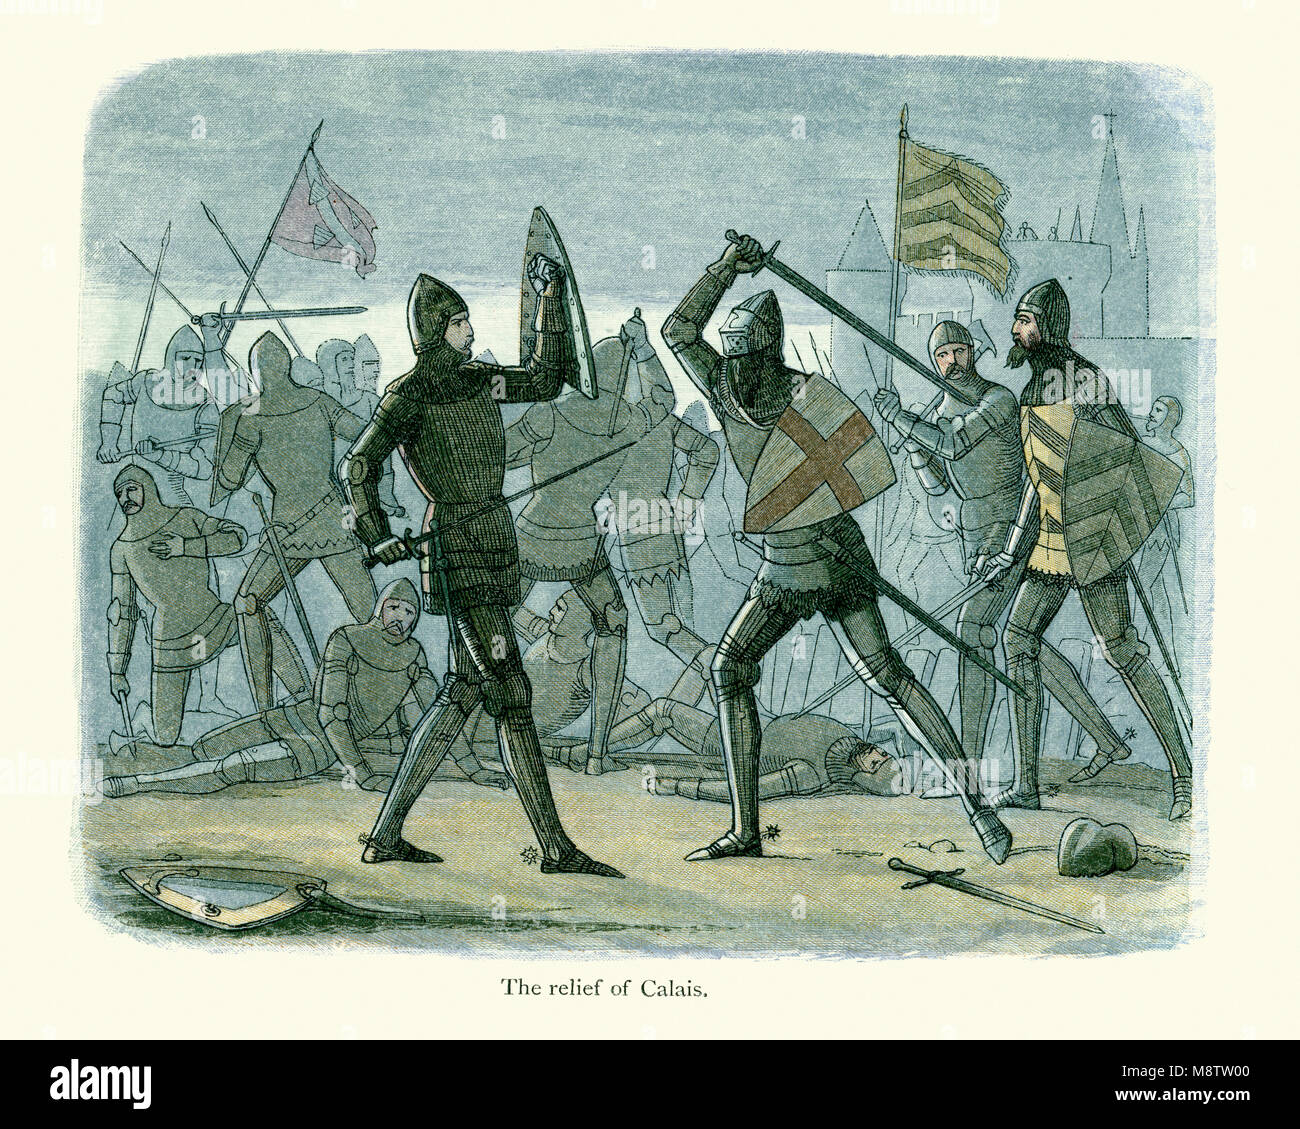 The relief of Calais.  English and French troops fight during the Hundred Years War. - Stock Image